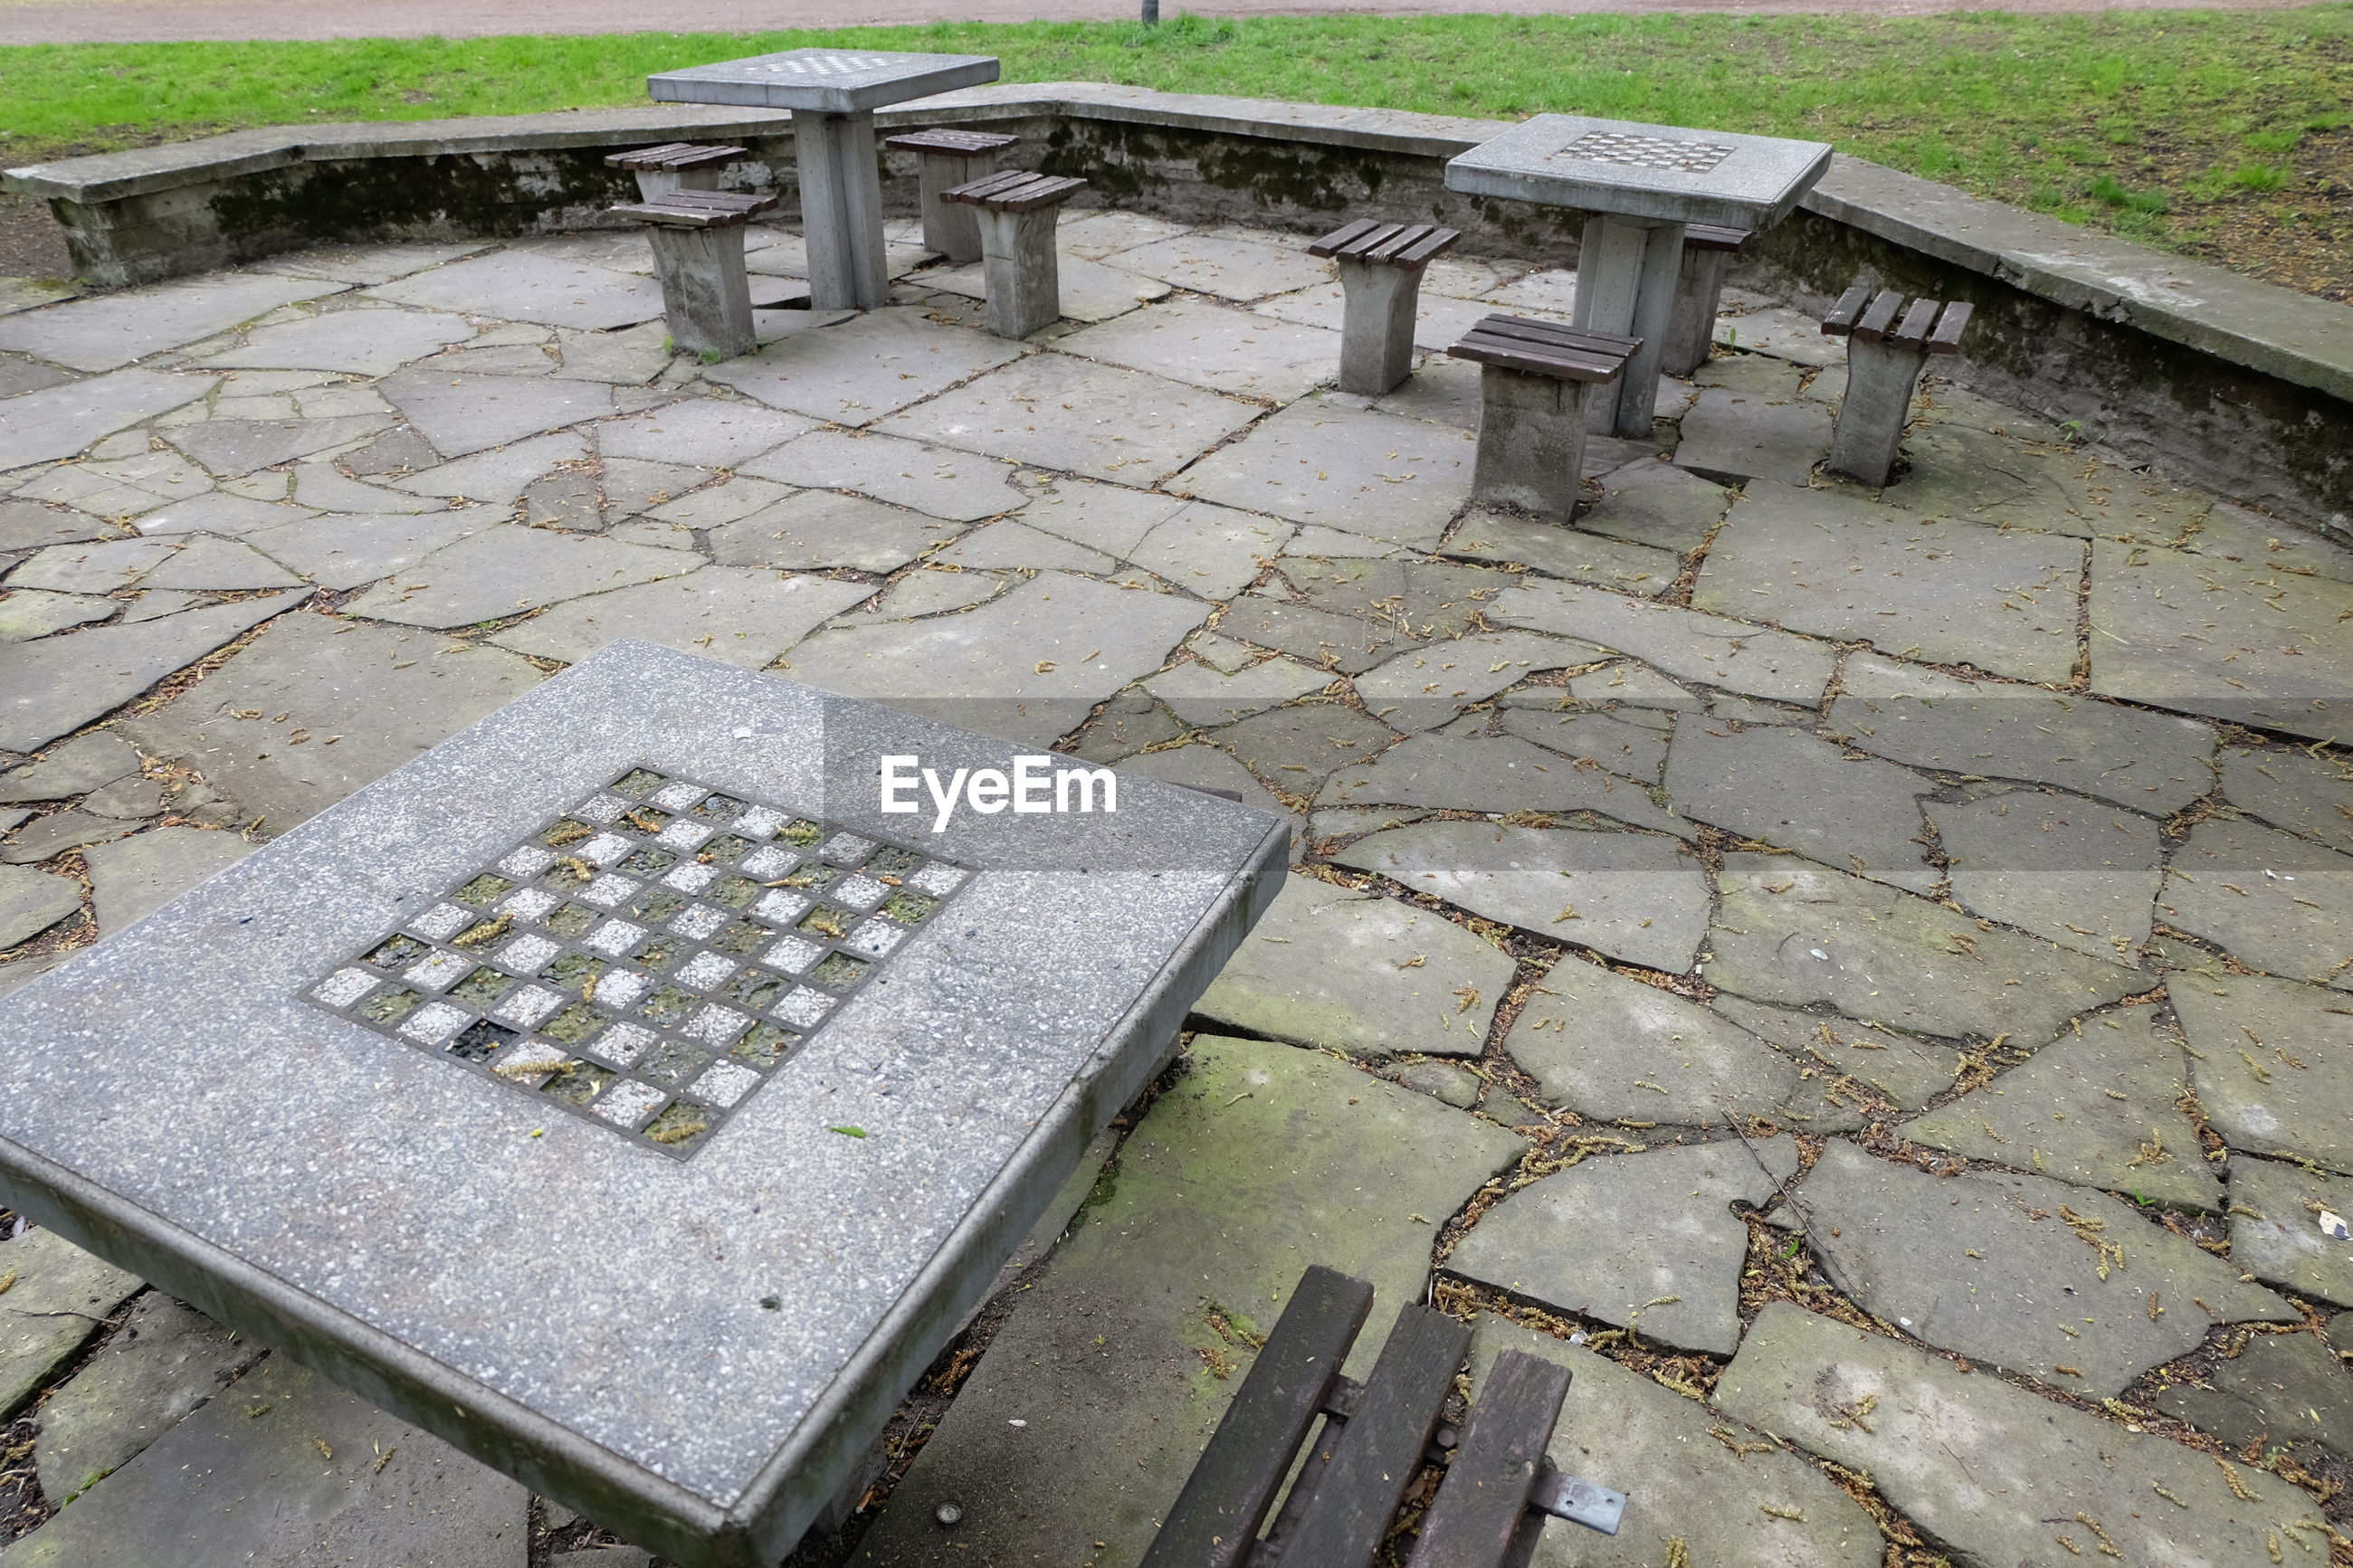 Stone chess board and seats at park